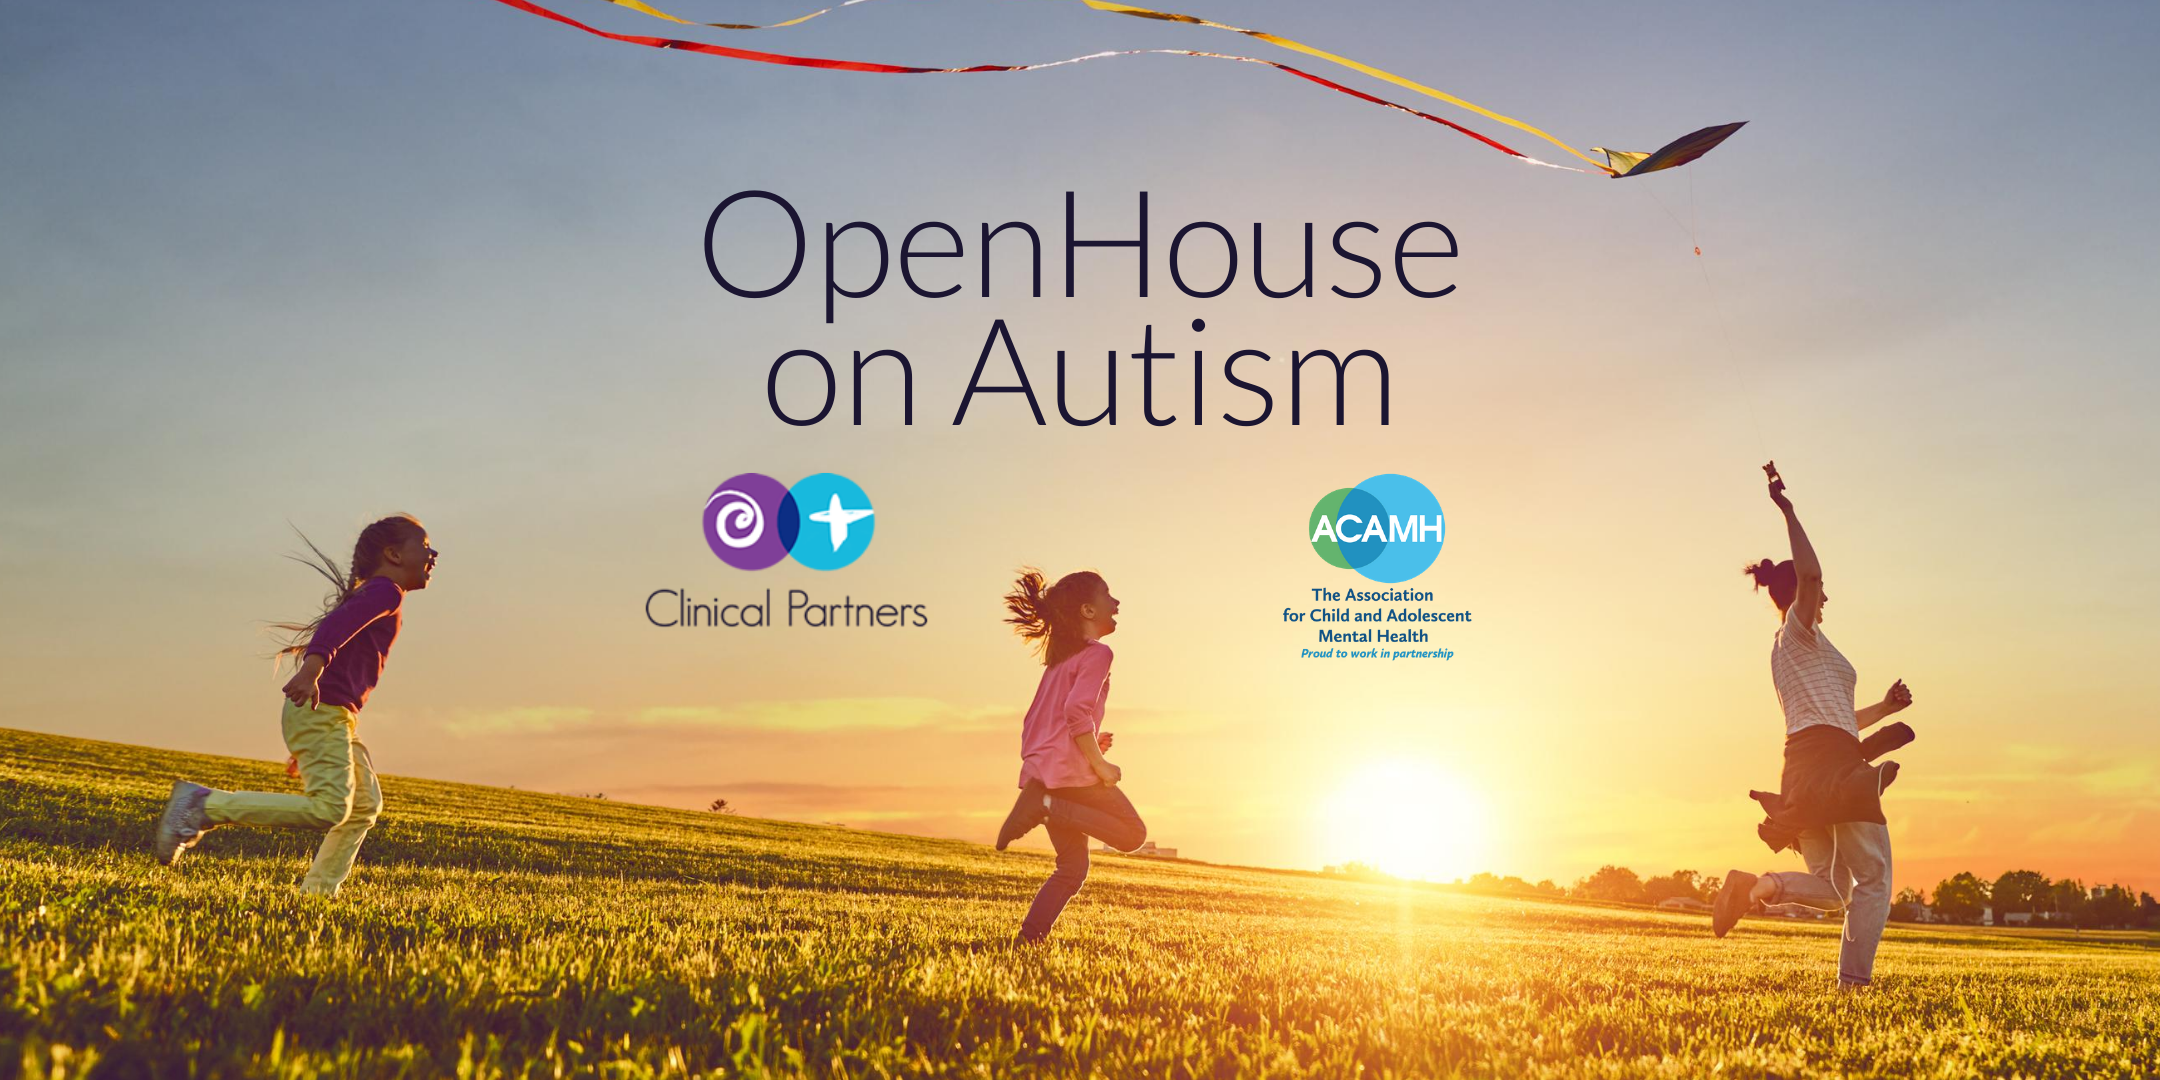 Copy of Openhouse on Autism 2